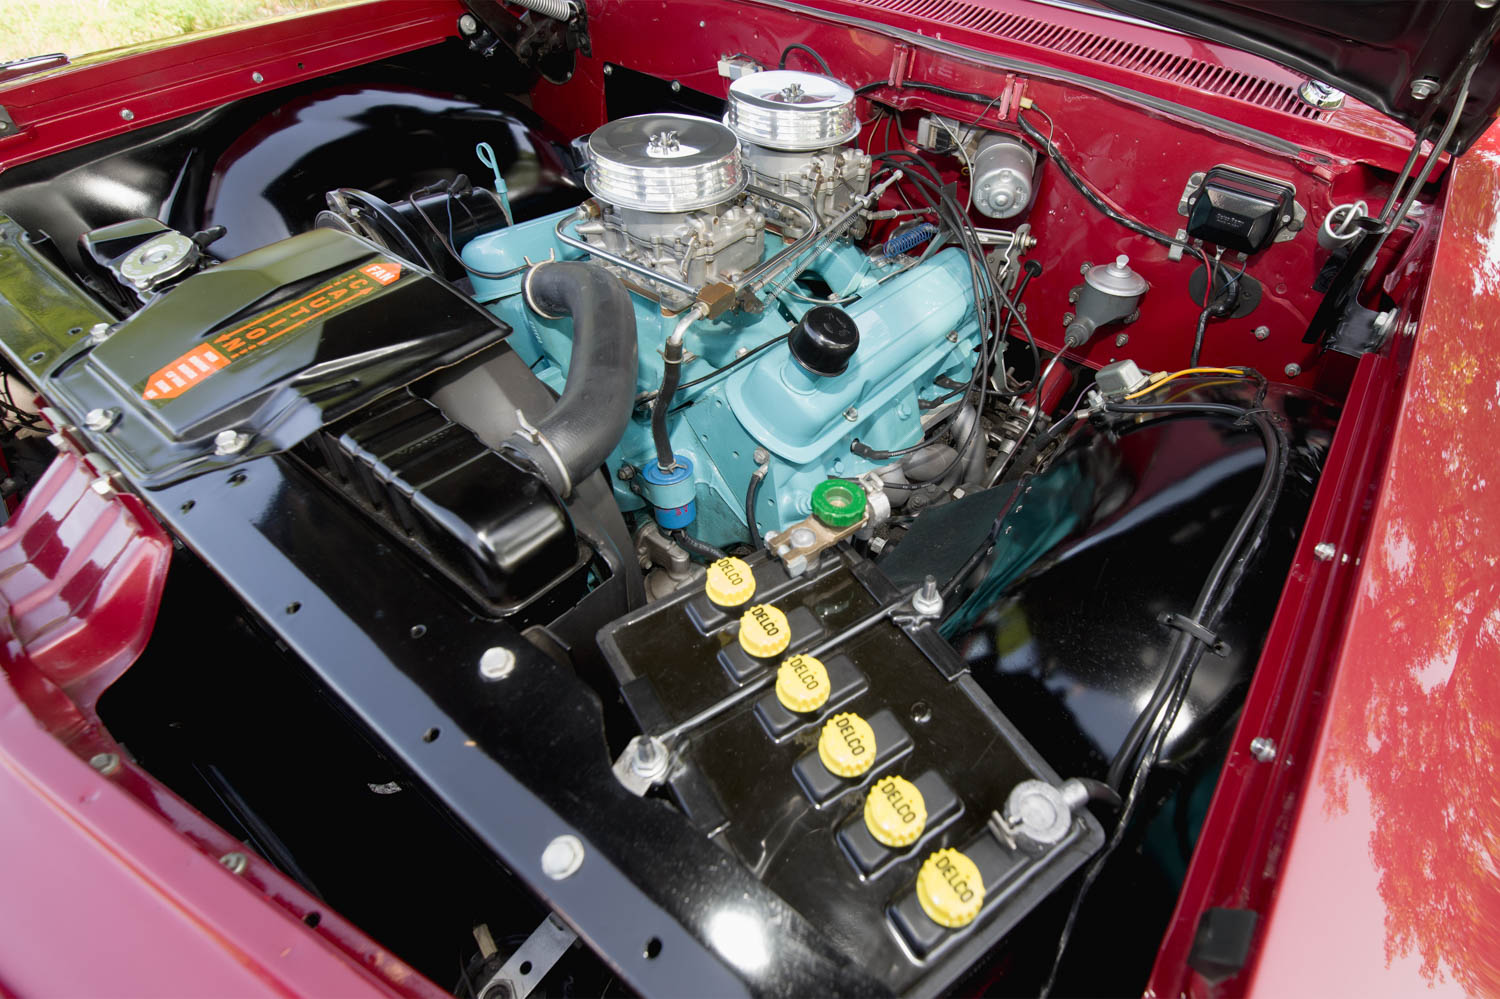 The engine compartment of this concours Catalina is beautifully finished. A period-correct battery cranks the high-compression 469-cubic-inch Pontiac engine.